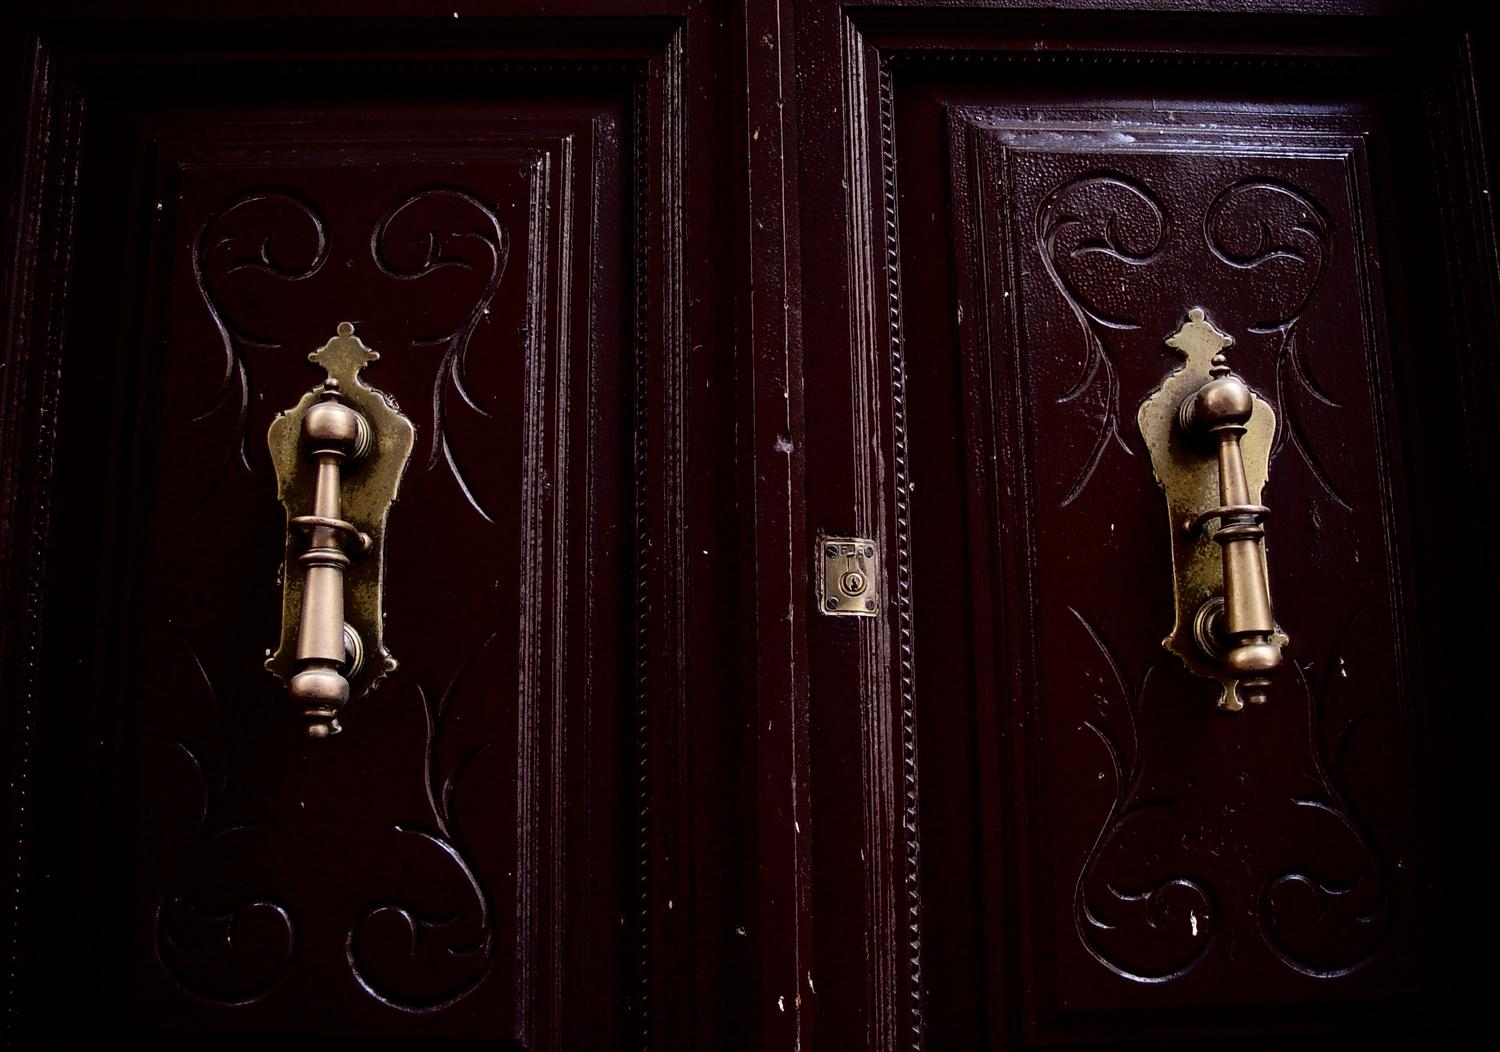 - A lovely pair of Spanish knockers - Techno-Impressionist Museum - Techno-Impressionism - art - beautiful - photo photography picture - by Tony Karp